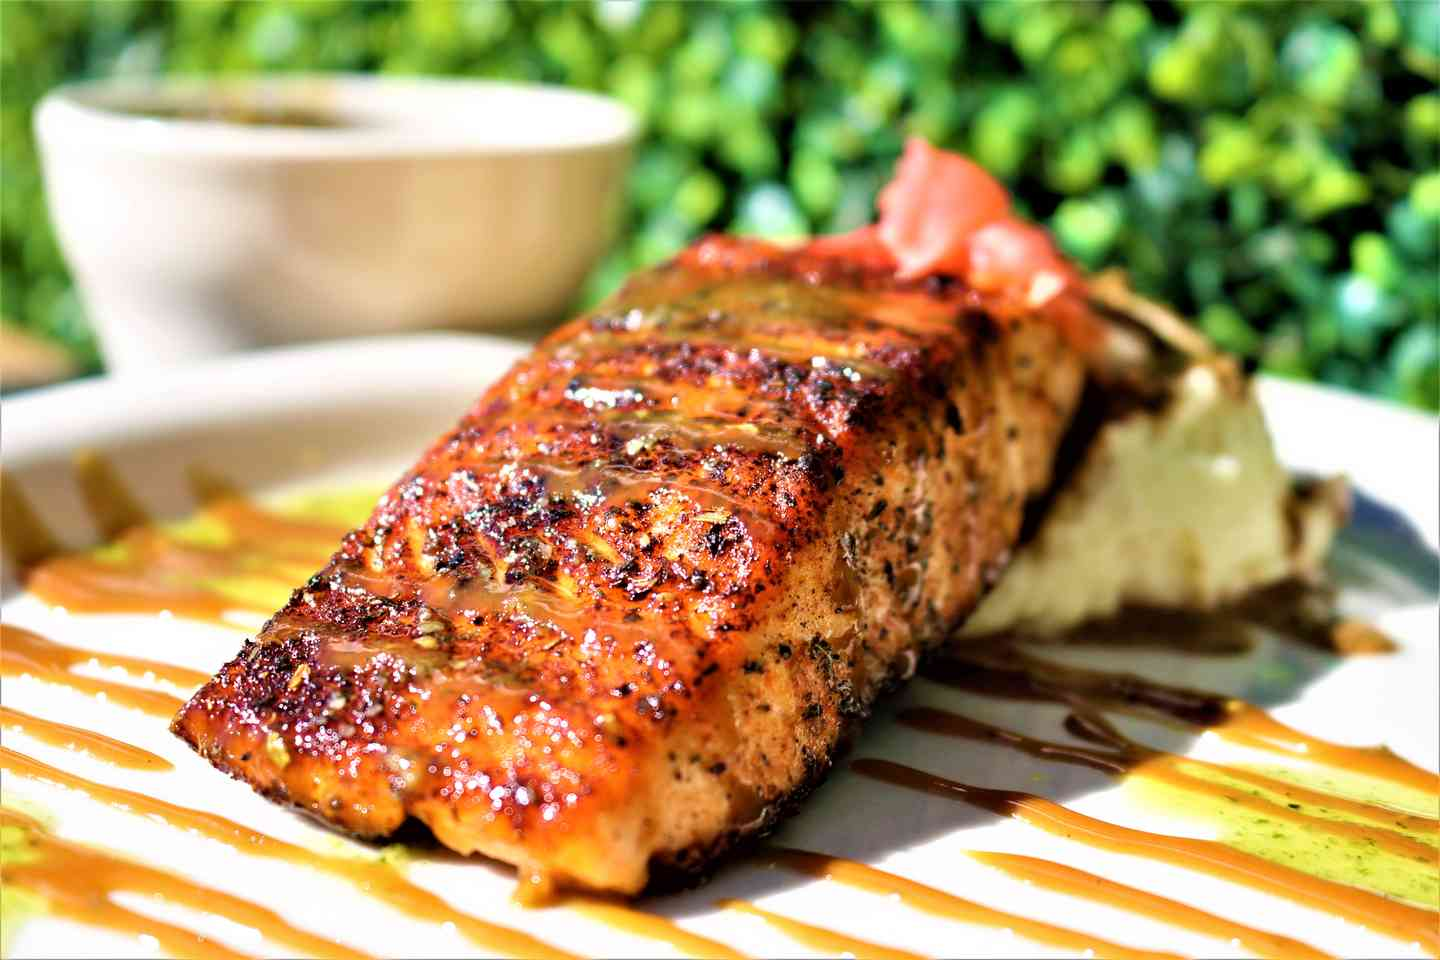 Blackened Voodoo Salmon